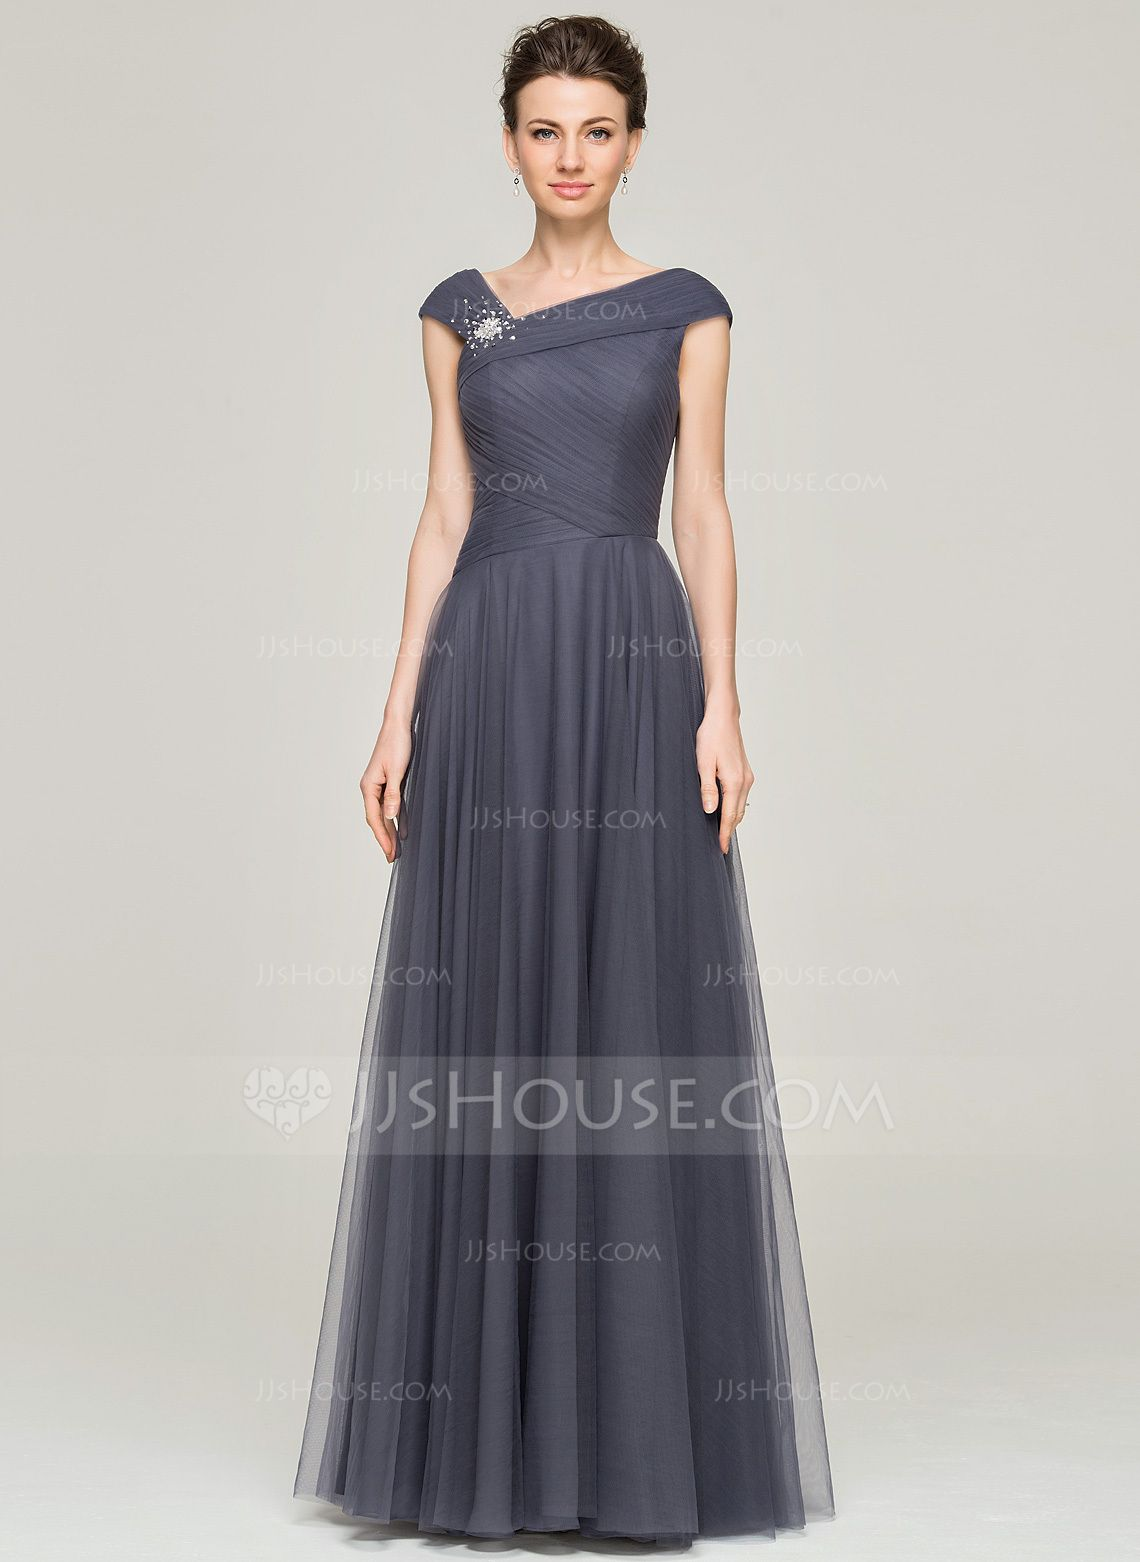 c0749dac0a3a A-Line/Princess Floor-Length Tulle Mother of the Bride Dress With Ruffle  Beading Sequins (008062861) - JJsHouse